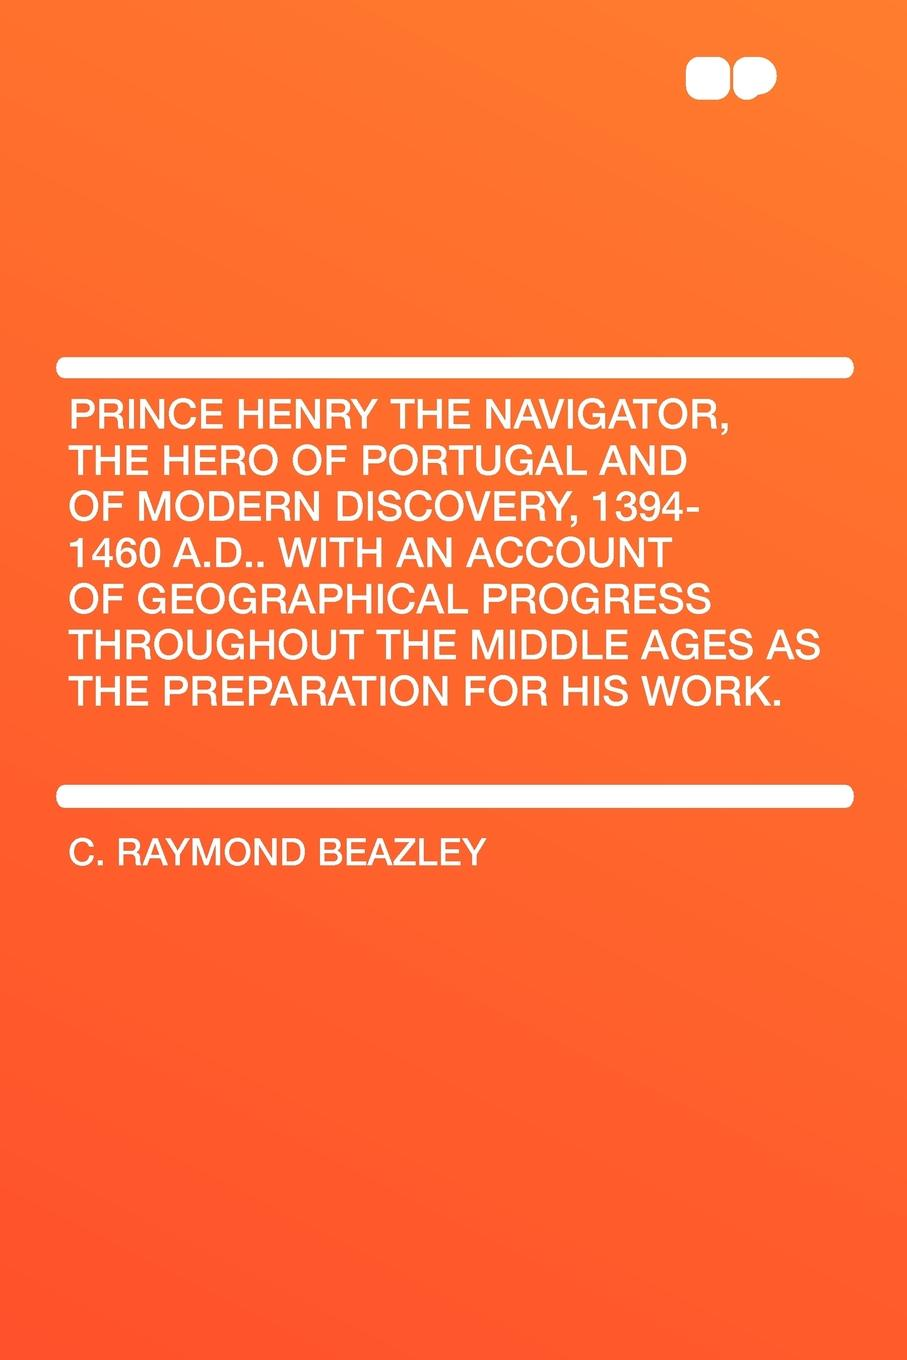 лучшая цена C. Raymond Beazley Prince Henry the Navigator, the Hero of Portugal and of Modern Discovery, 1394-1460 A.D.. With an Account of Geographical Progress Throughout the Middle Ages As the Preparation for His Work.